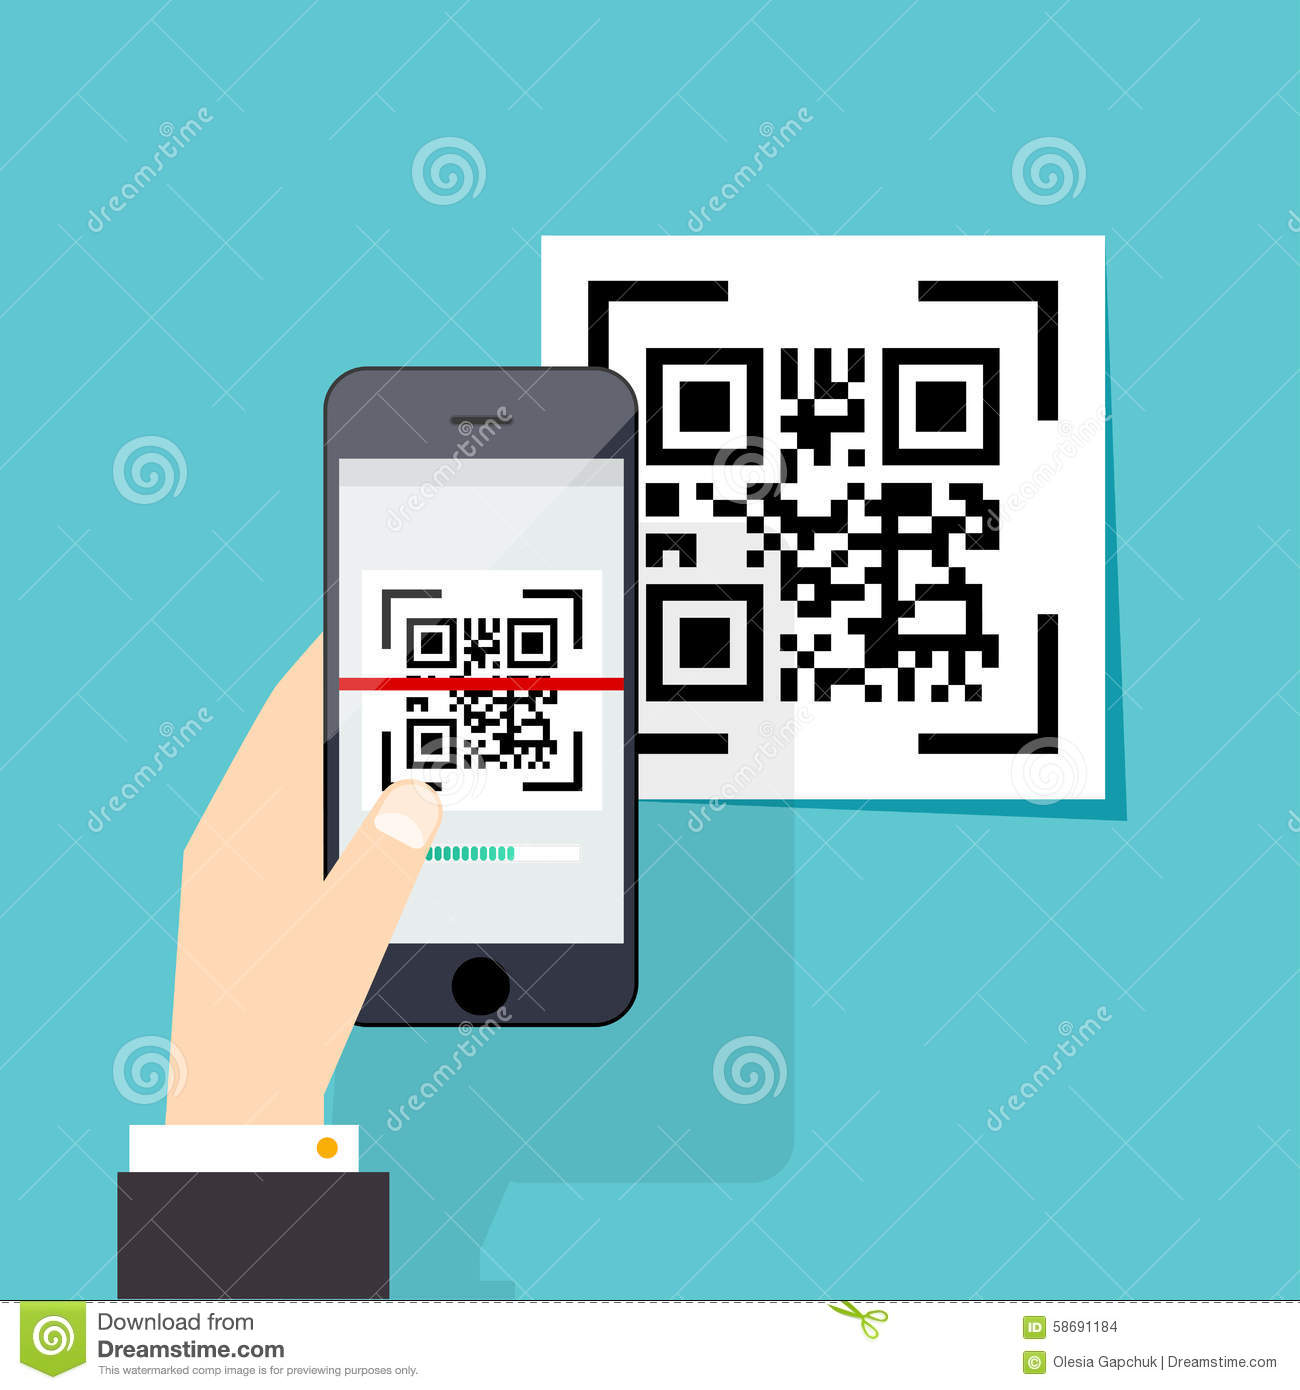 phone area code map with Stock Illustration Scan Qr Code To Mobile Phone Electronic Scan Digital Technolo Technology Barcode Vector Illustration Image58691184 on Maps moreover Toulouse Map furthermore RecreationalAreaDetails also The Leela Palace Bangalore 40167 together with Broward County Zip Codes Maps.